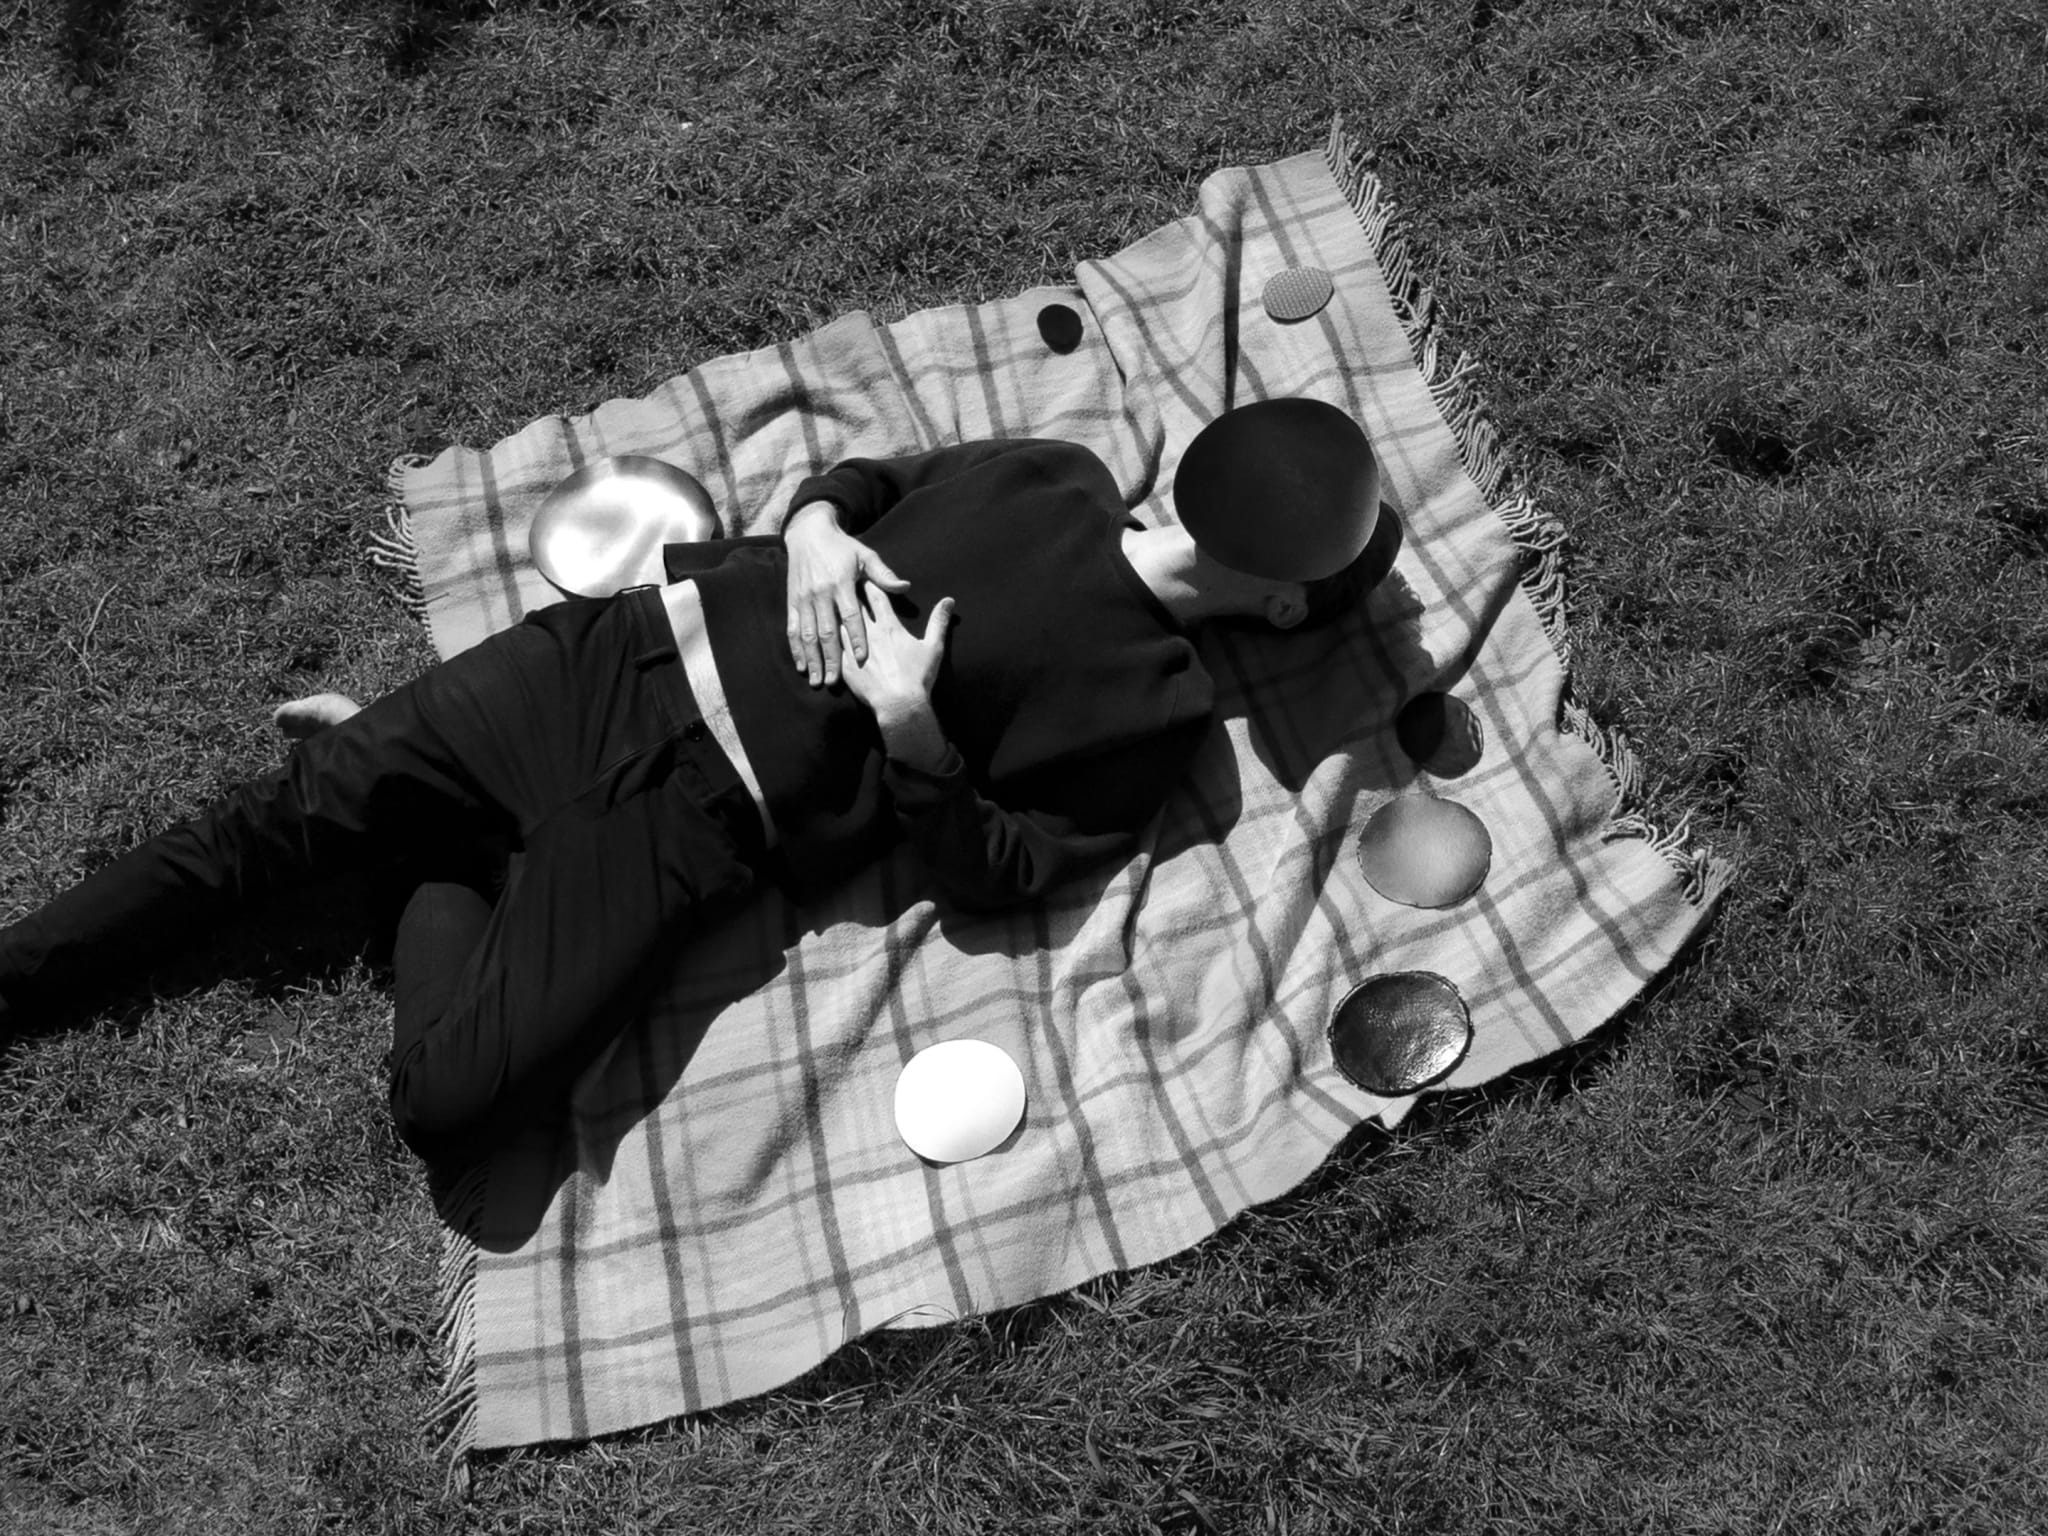 black and white photo of man lying on rug on grass